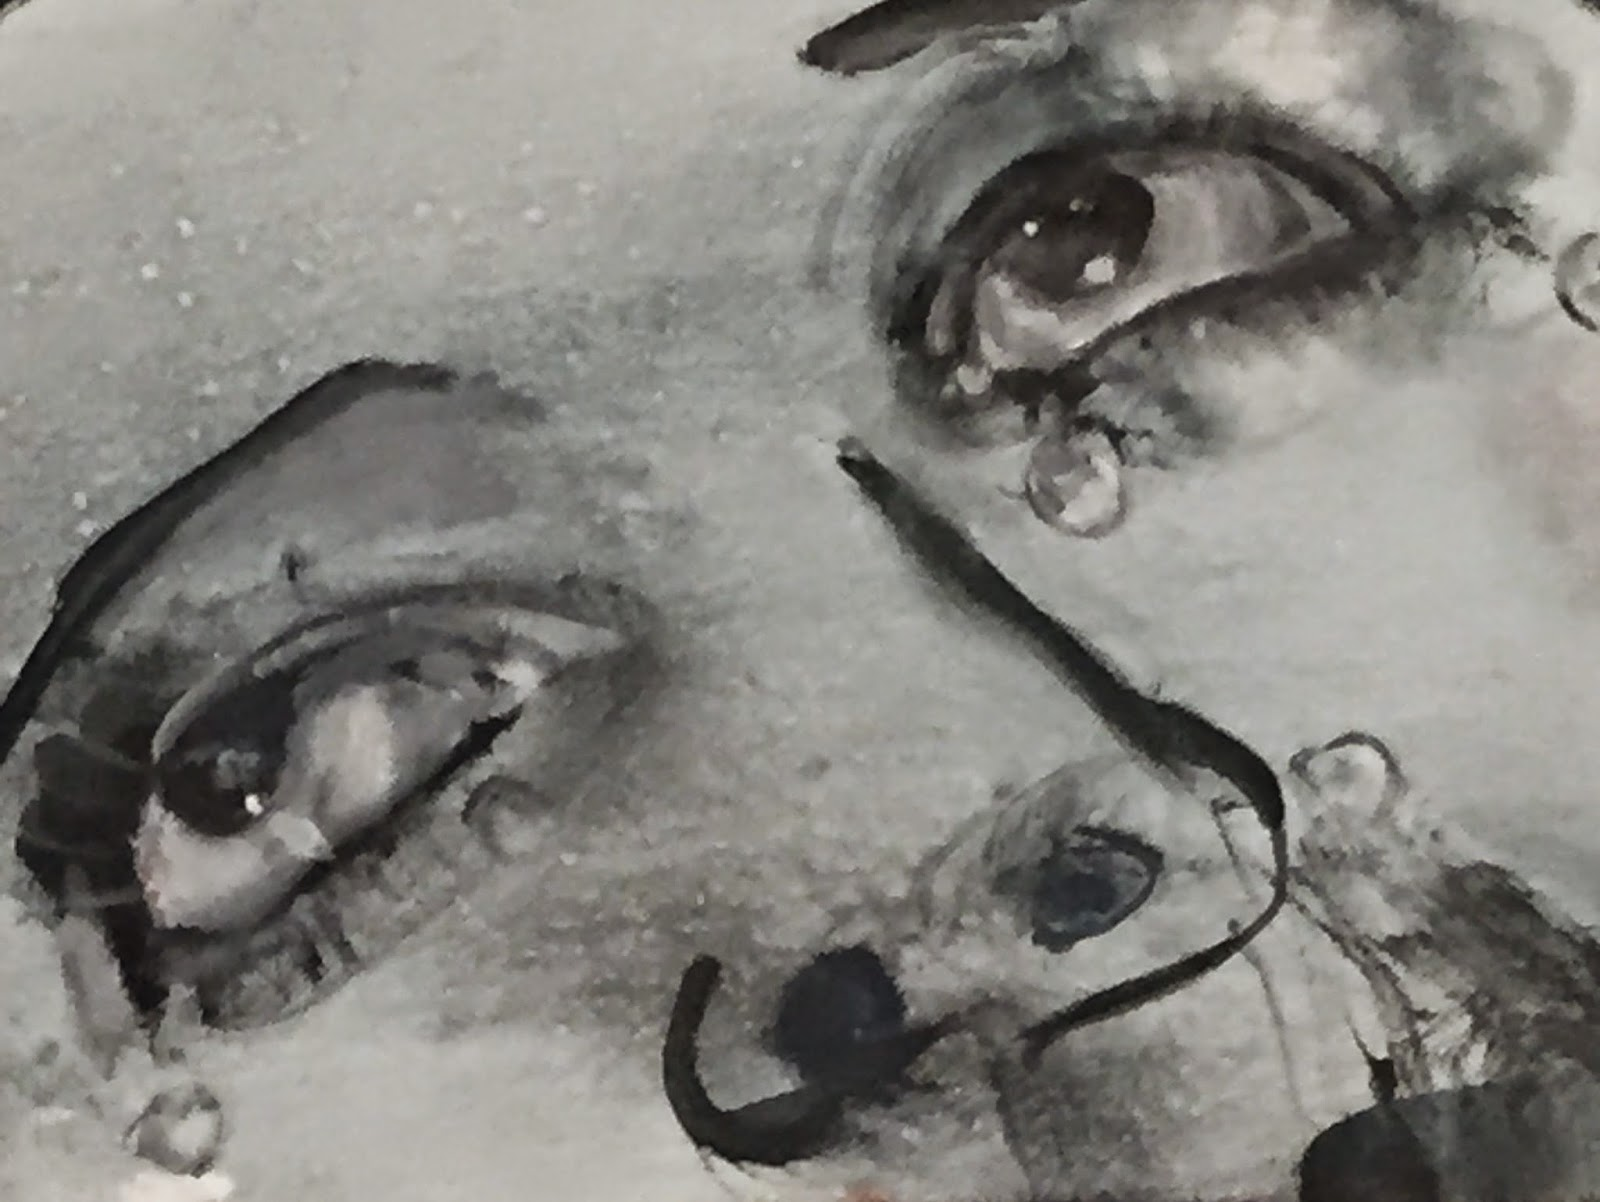 Painting of a woman's eyes and her tears